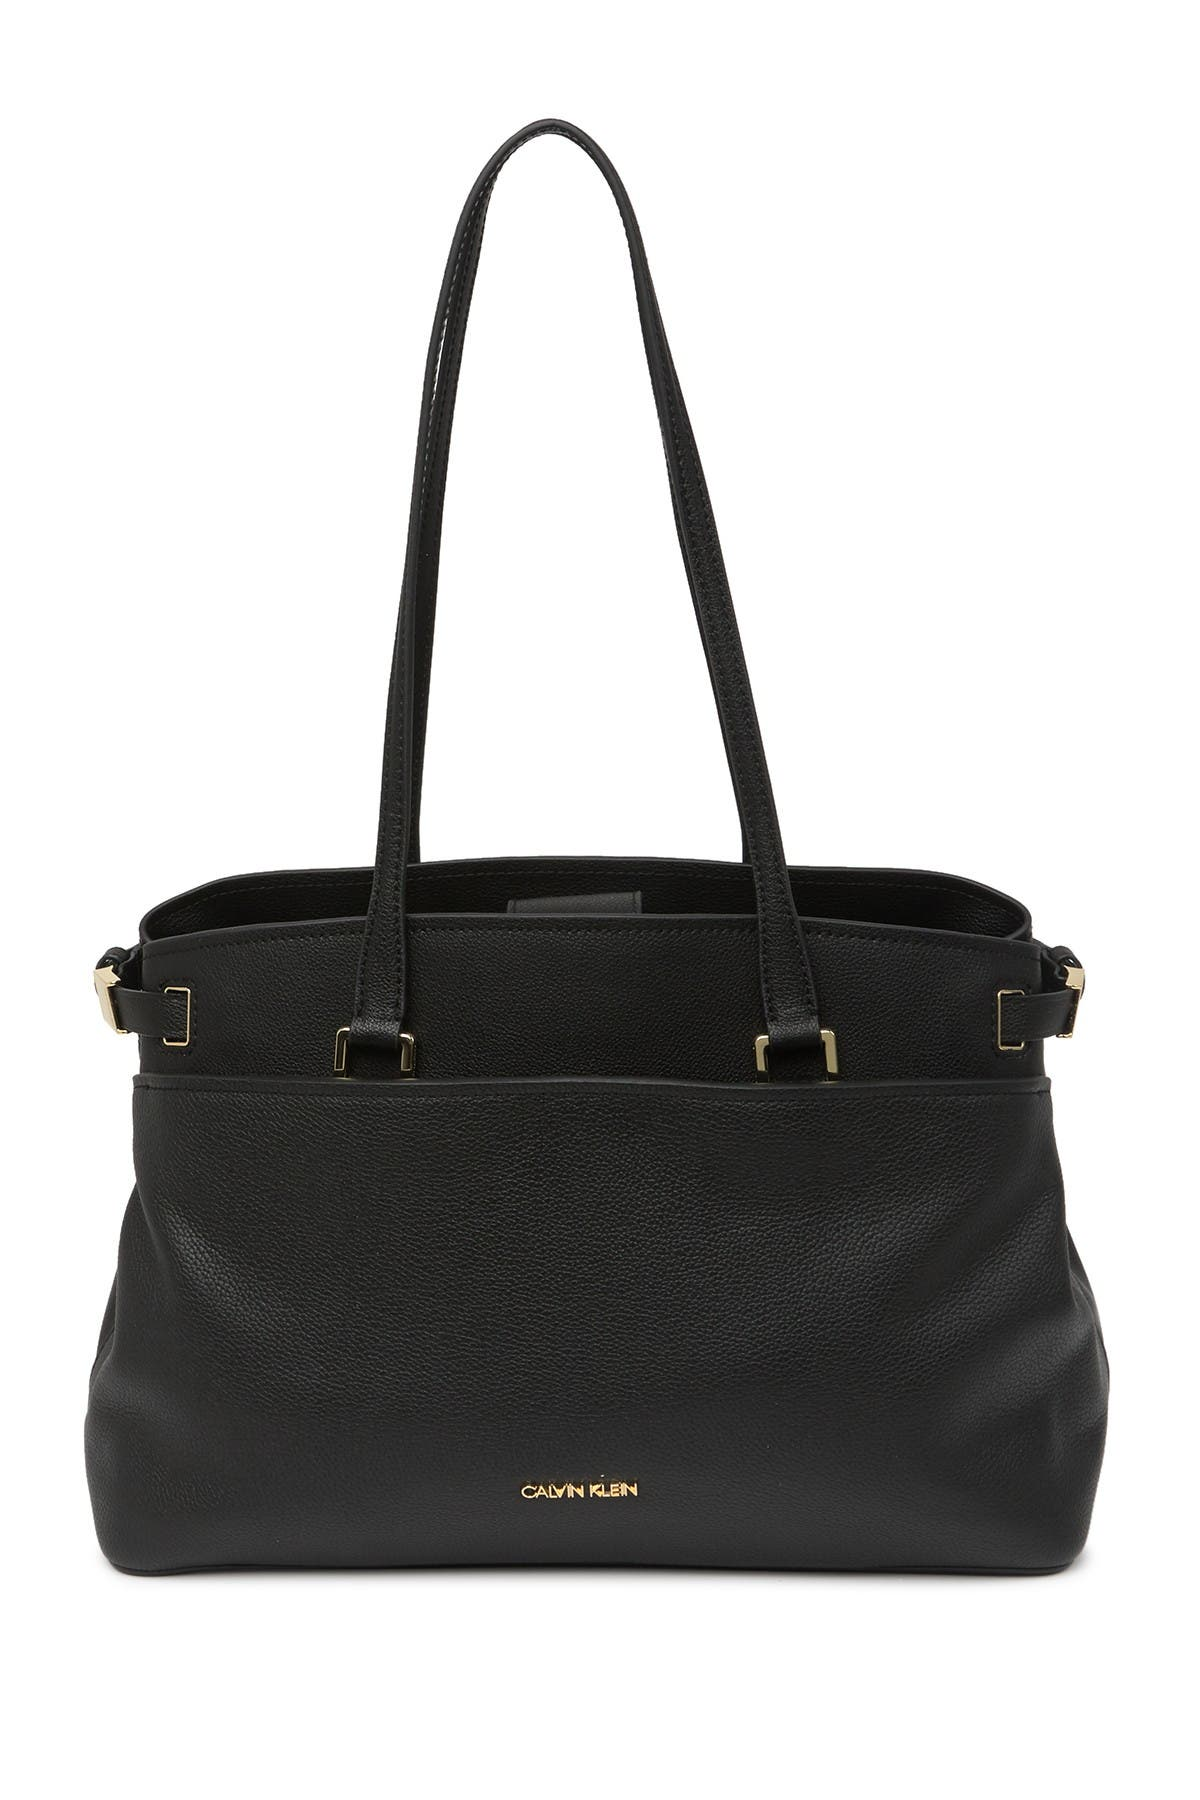 Image of Calvin Klein Avery Micro Pebble Leather Tote